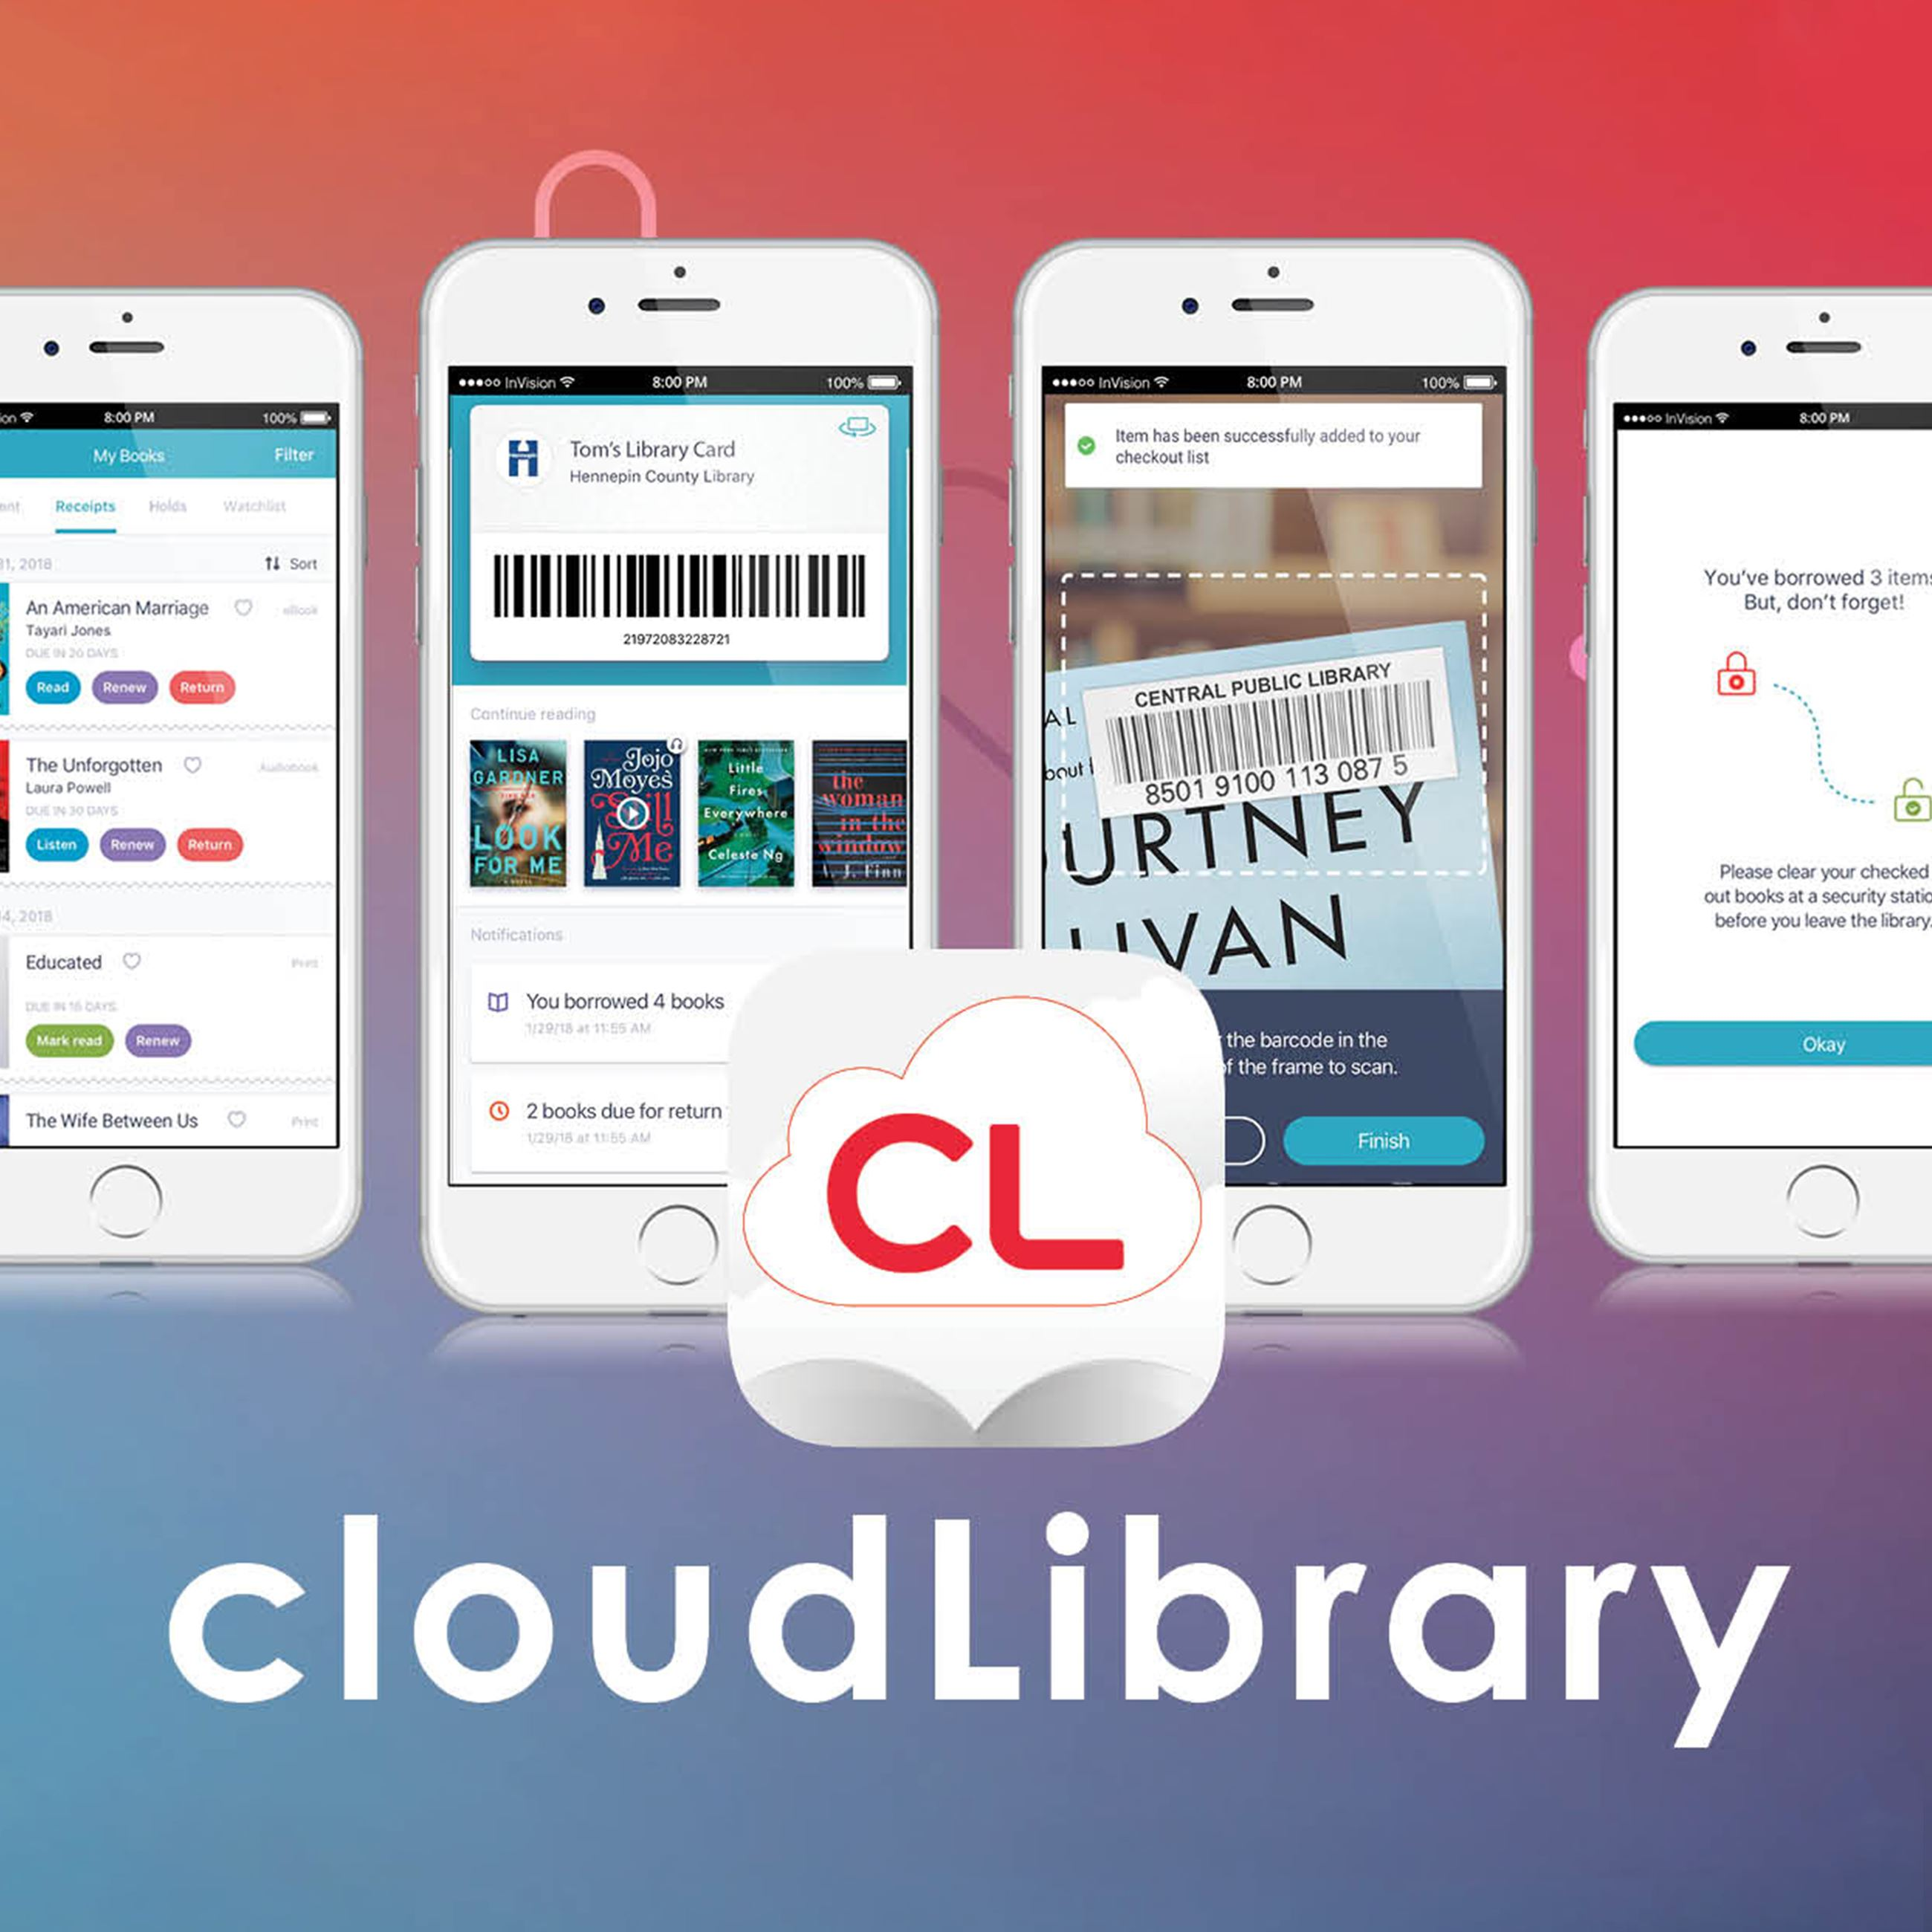 Download eBooks and eAudiobooks with cloudLibrary